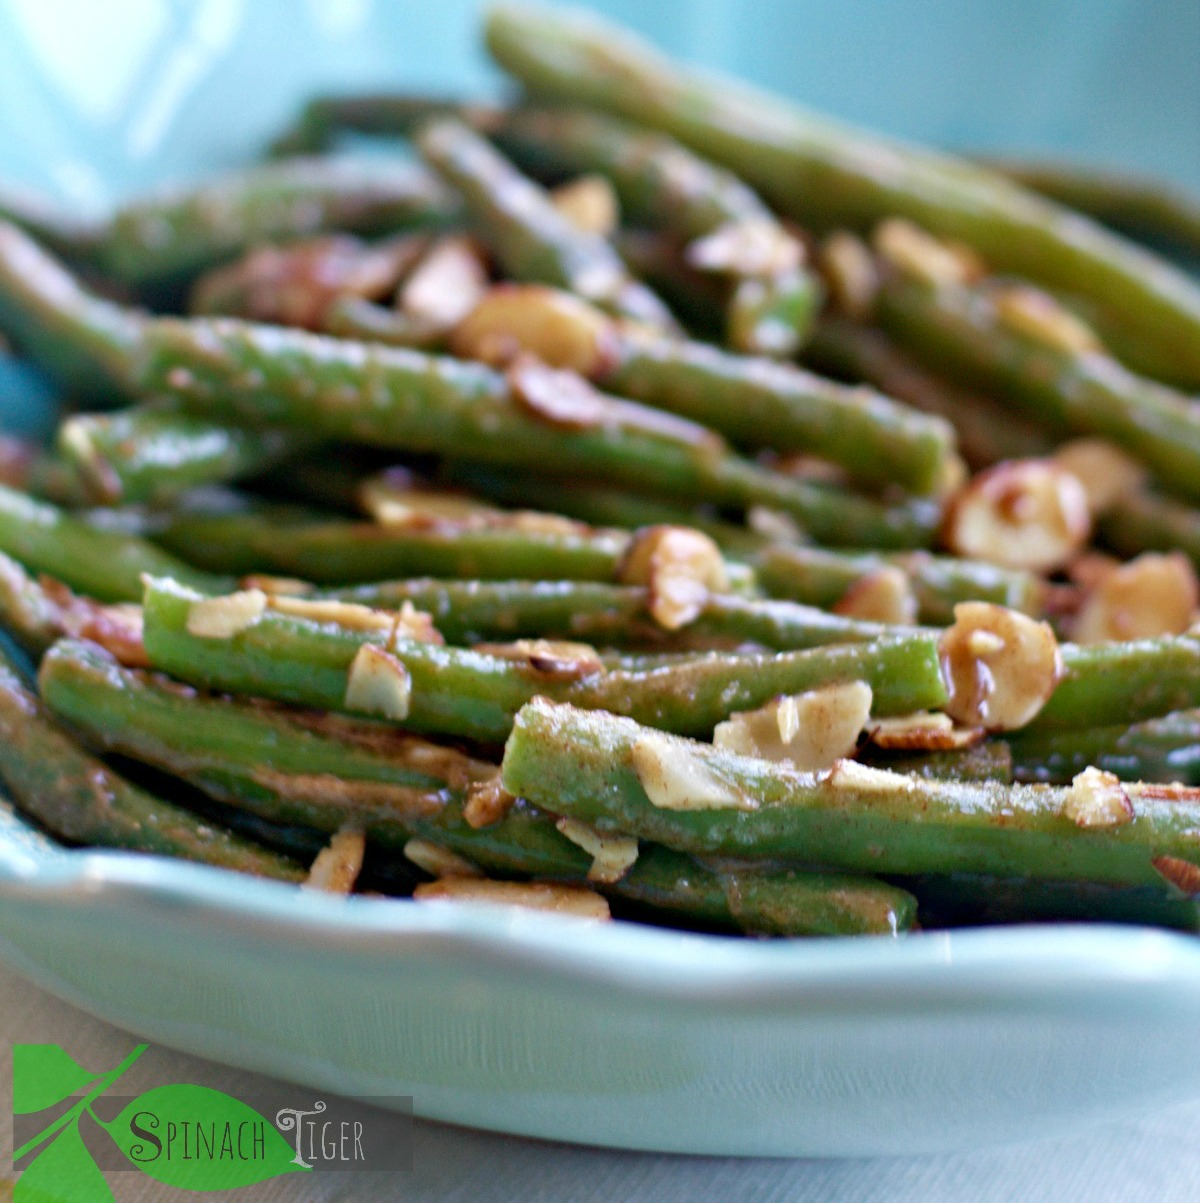 Green beans almondine for Keto Thanksgiving, Low Carb, Grain Free, Sugar Free , Gluten free